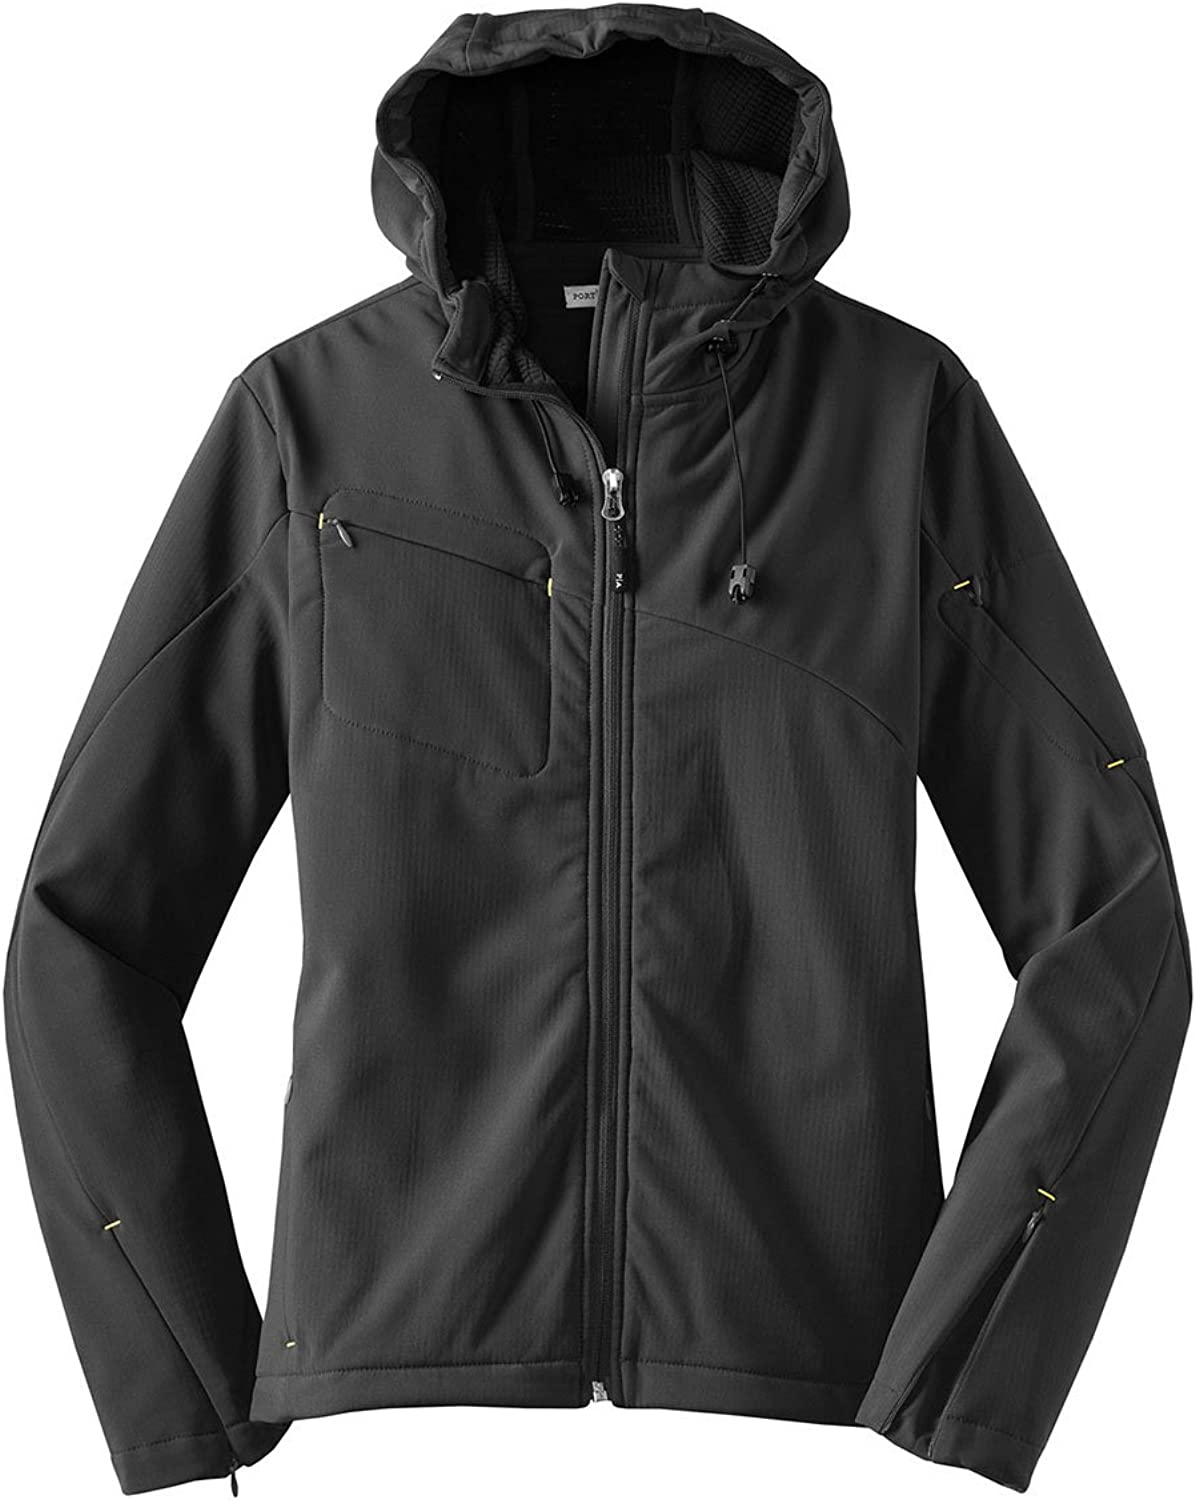 Port Authority Ladies Textured Hooded Soft Shell Jacket, Charcoal Lemon Yellow, X-Small